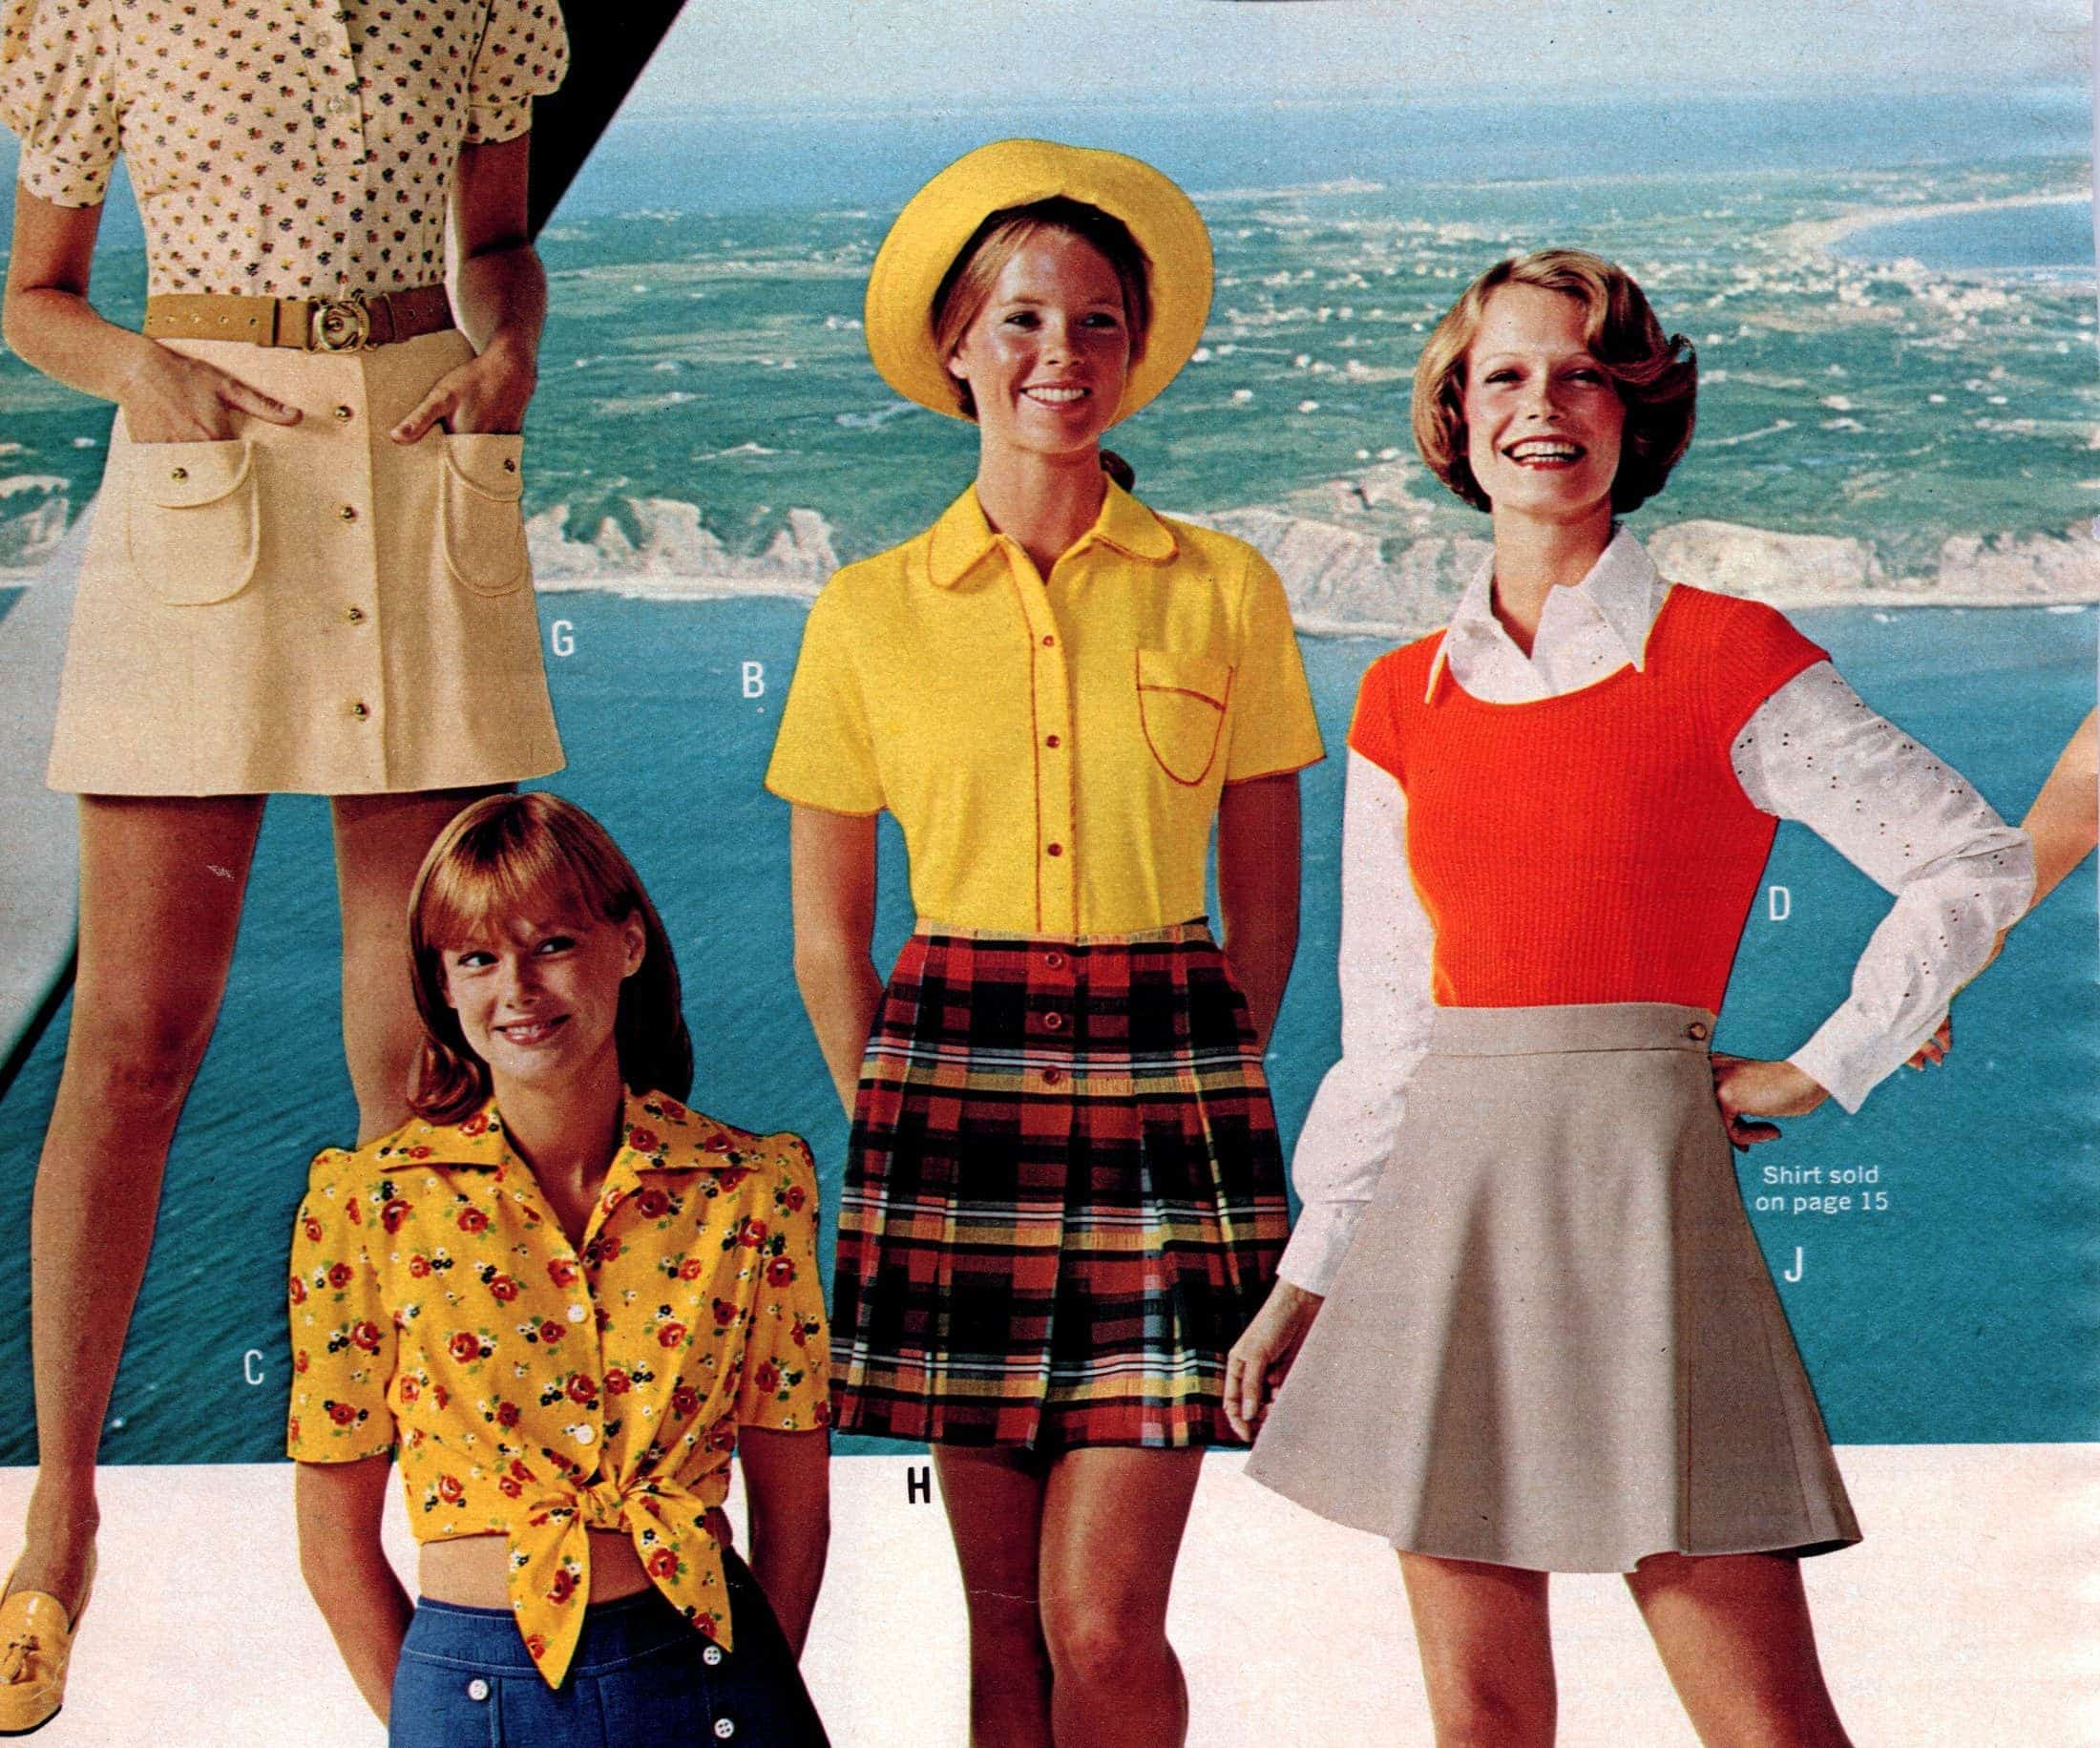 Retro mini dresses and vintage clothing from 1973 - fashion (2)